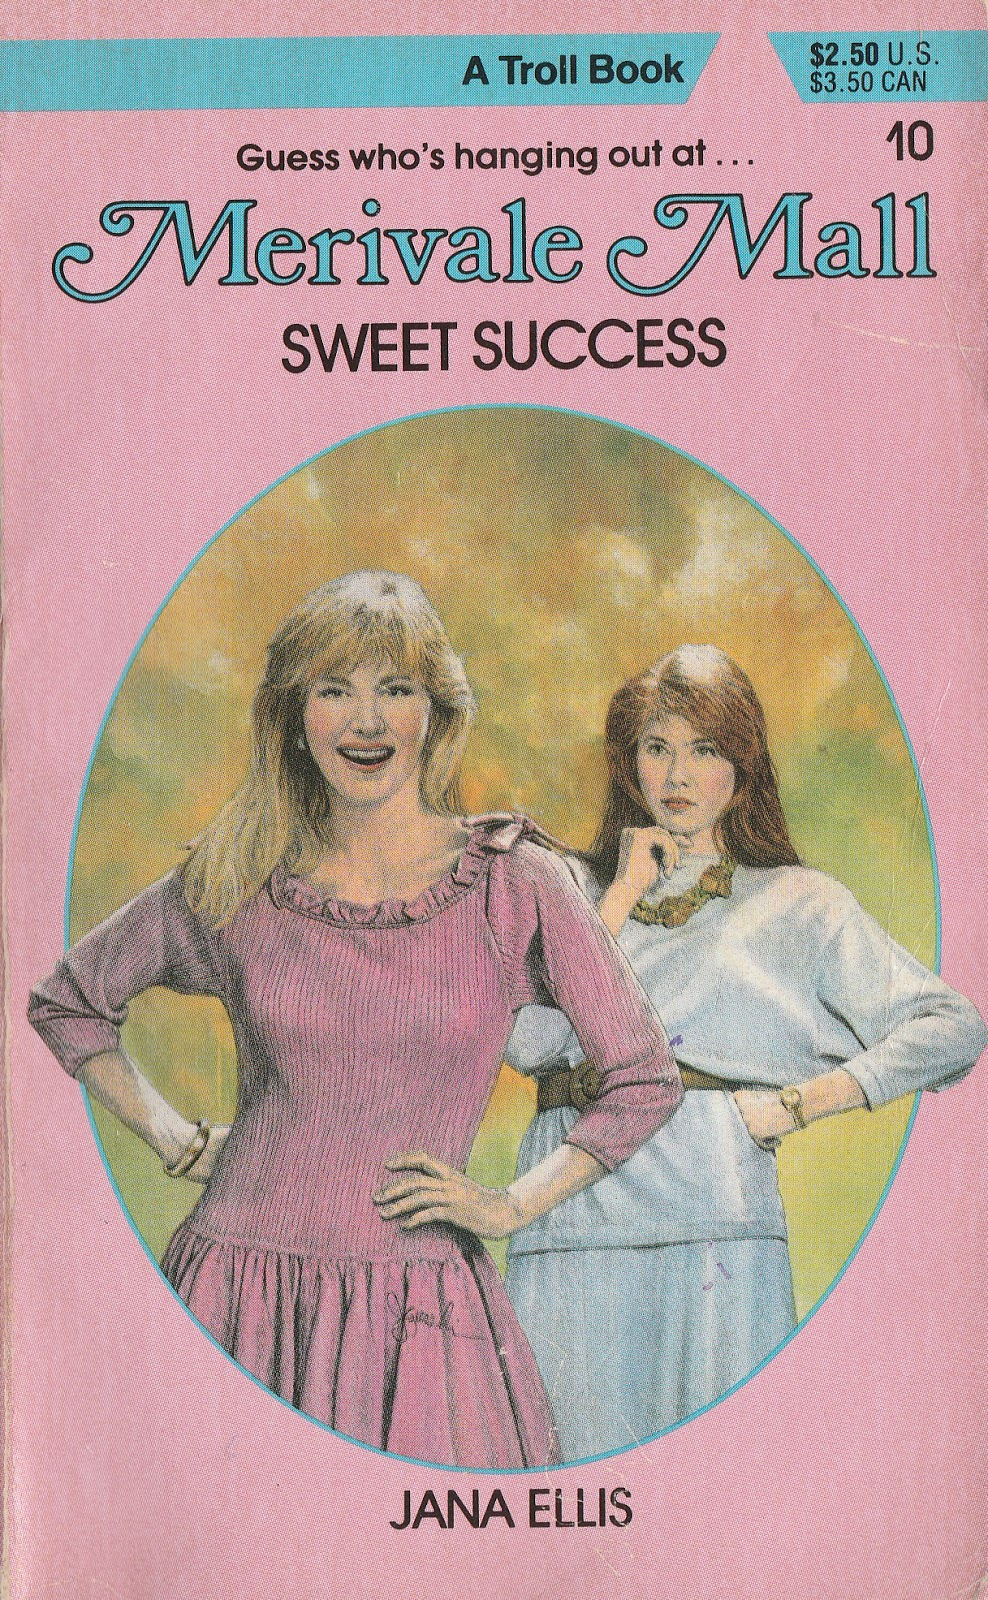 In Merivale Mall #10, Sweet Success, Lori's talent at creating fashion has  been discovered. Lori now has a wealthy backer who gets her started in  business.